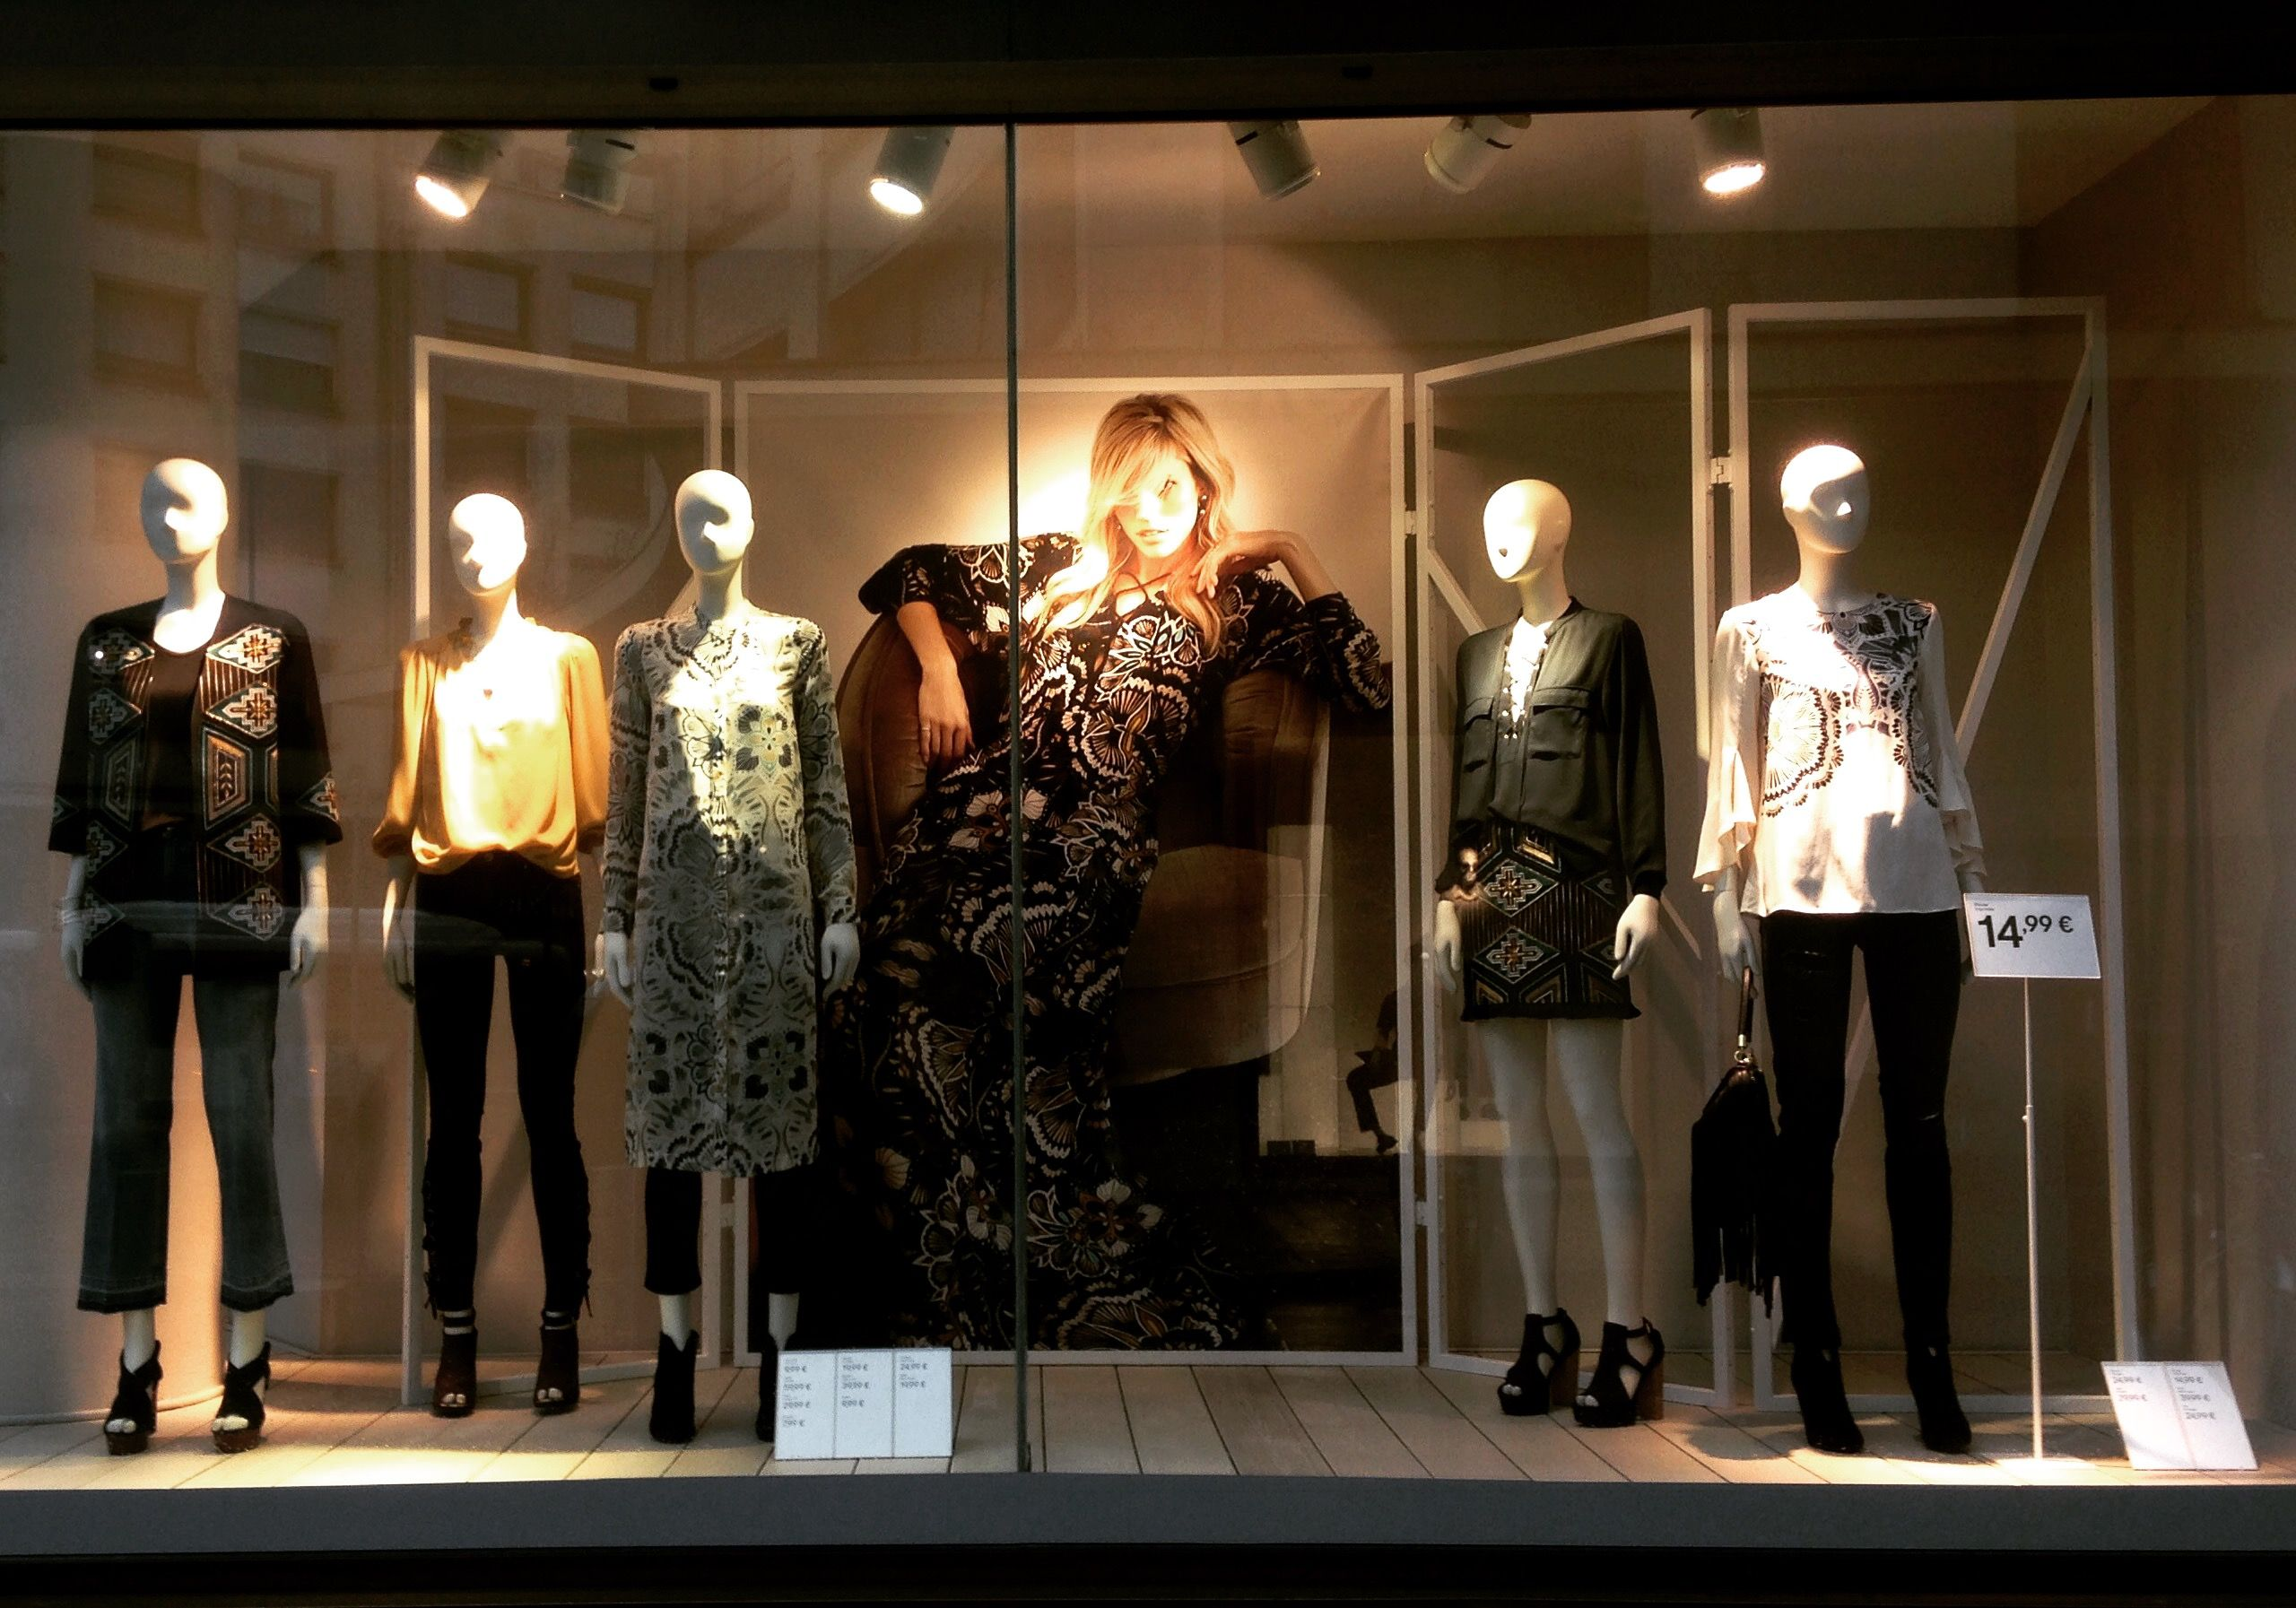 Le Meilleur Fashion Week Window And Indoor Visual Merchandising Ce Mois Ci